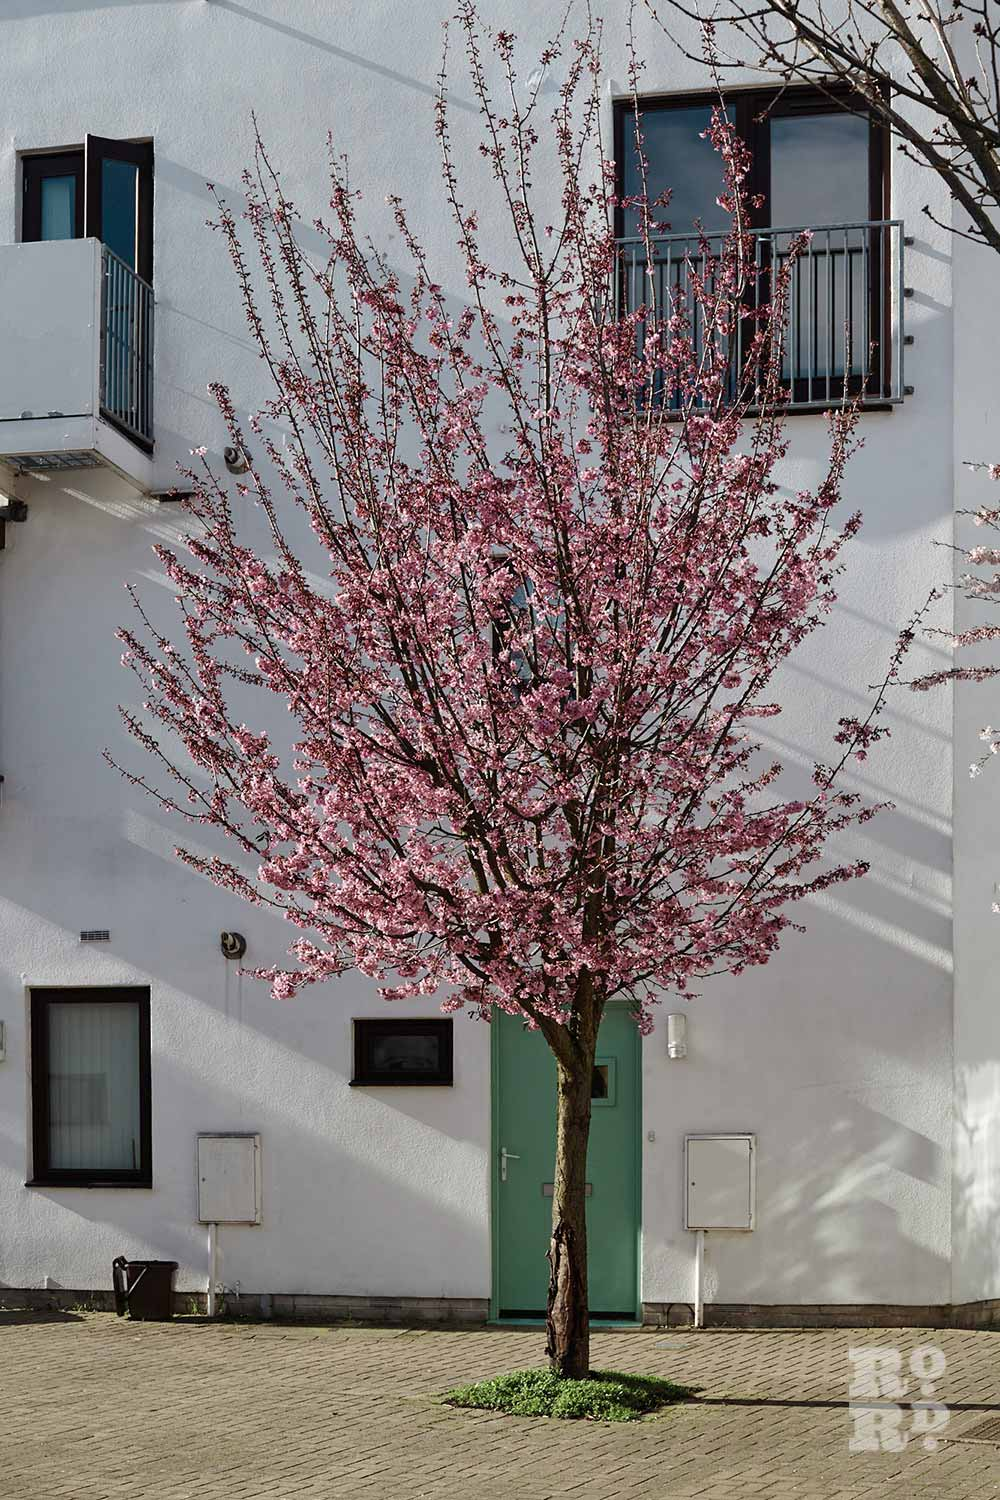 Cherry tree outside turquoise front door, Donnybrook Quarter, Bow, East London (photos by Yev Kazannik)